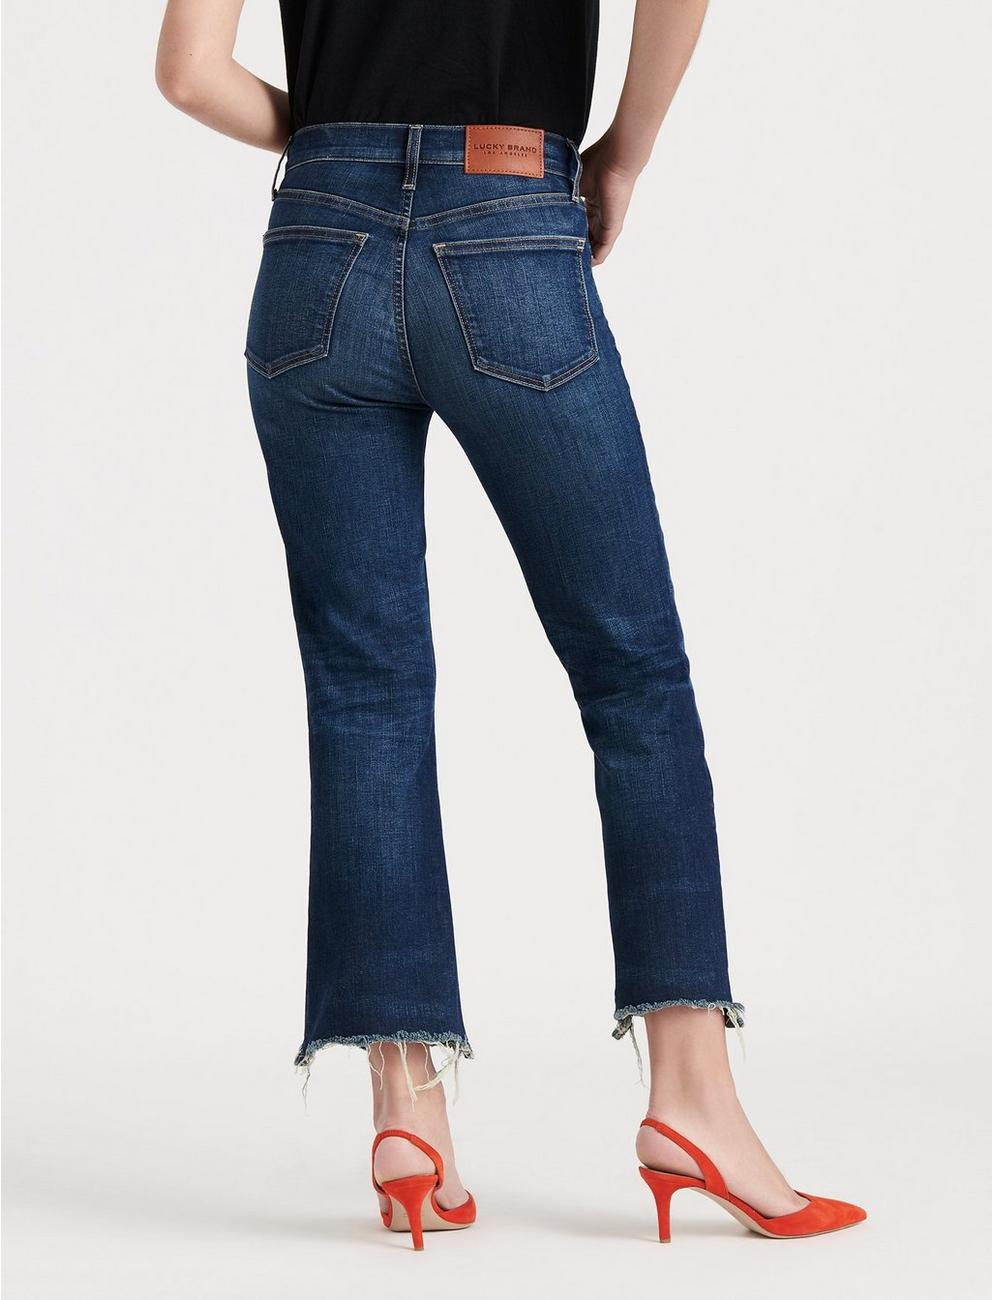 HIGH RISE BRIDGETTE CROP MINI BOOT JEAN, CUPID